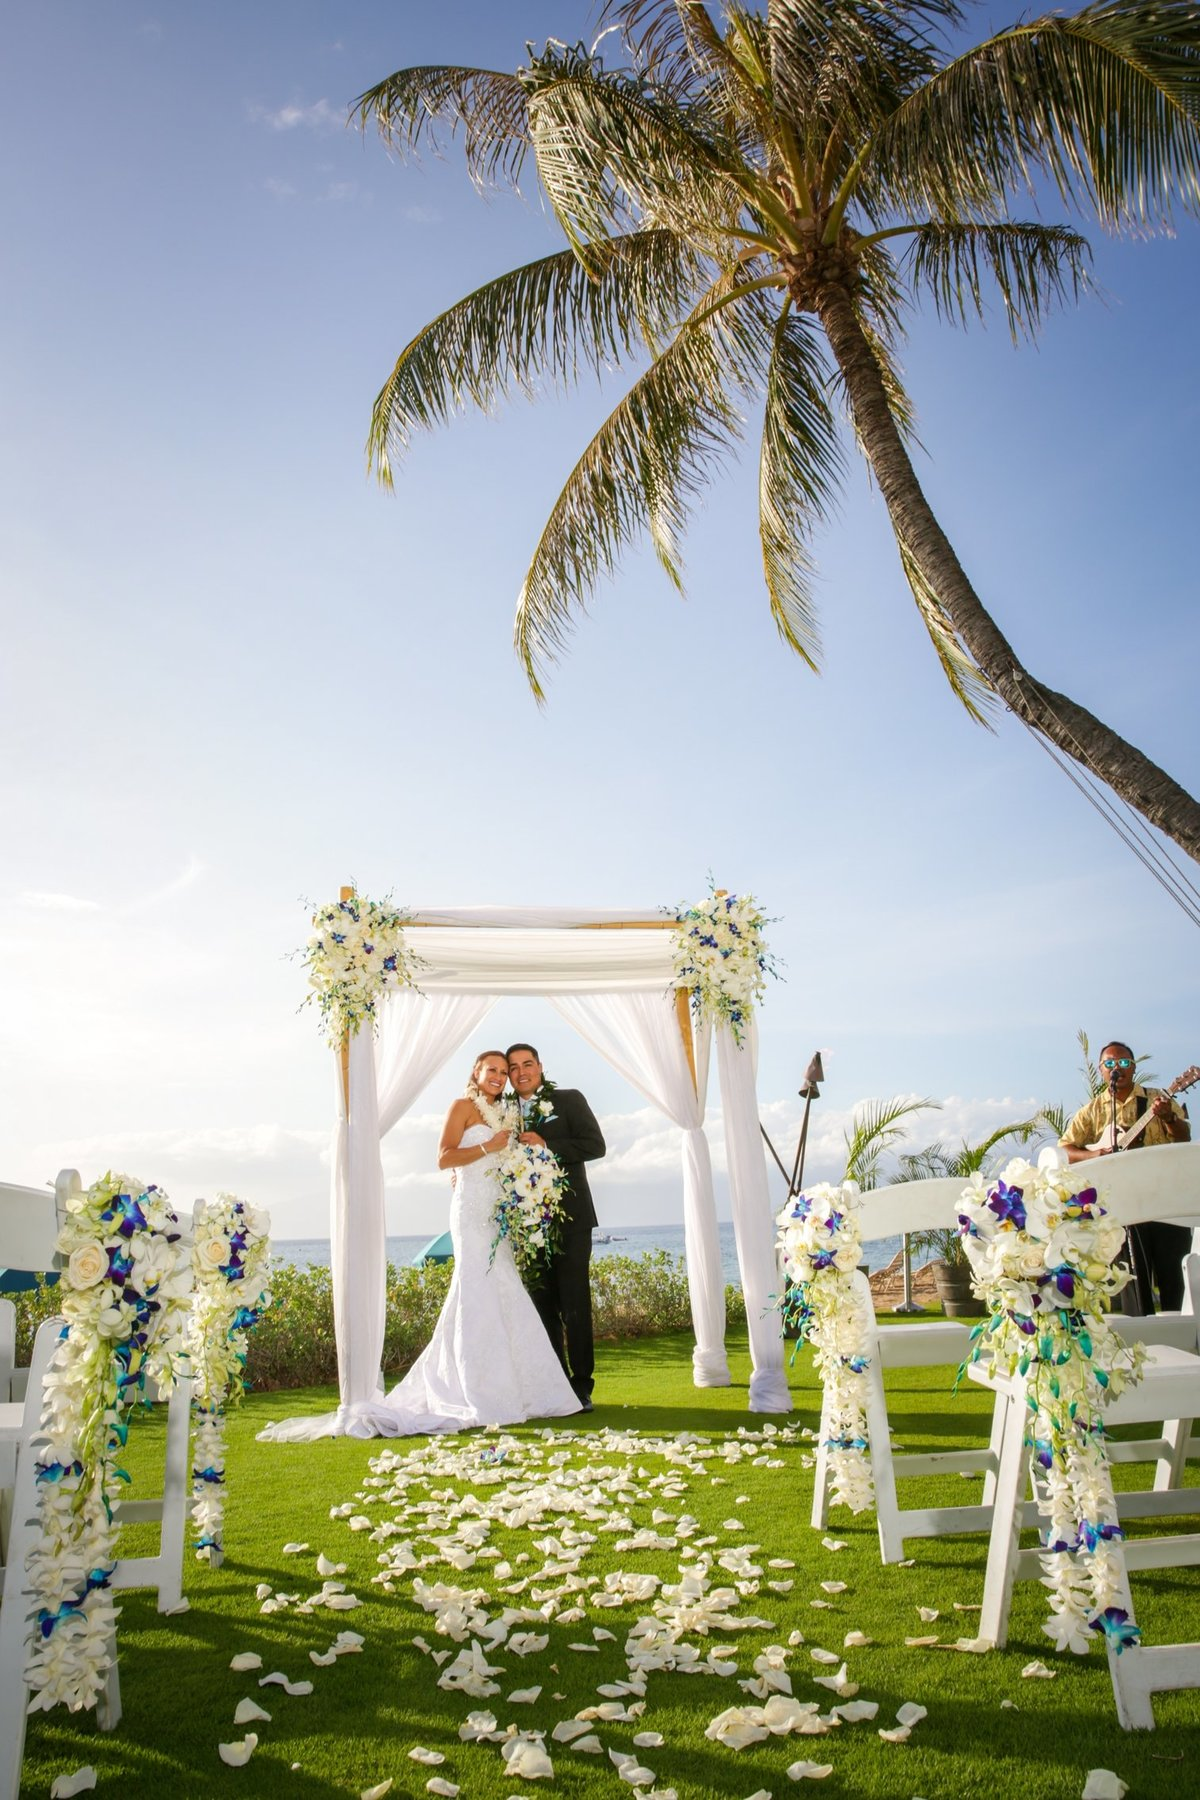 Maui Wedding Photography at The Westin Maui Resort and Spa with bride and groom during the ceremony